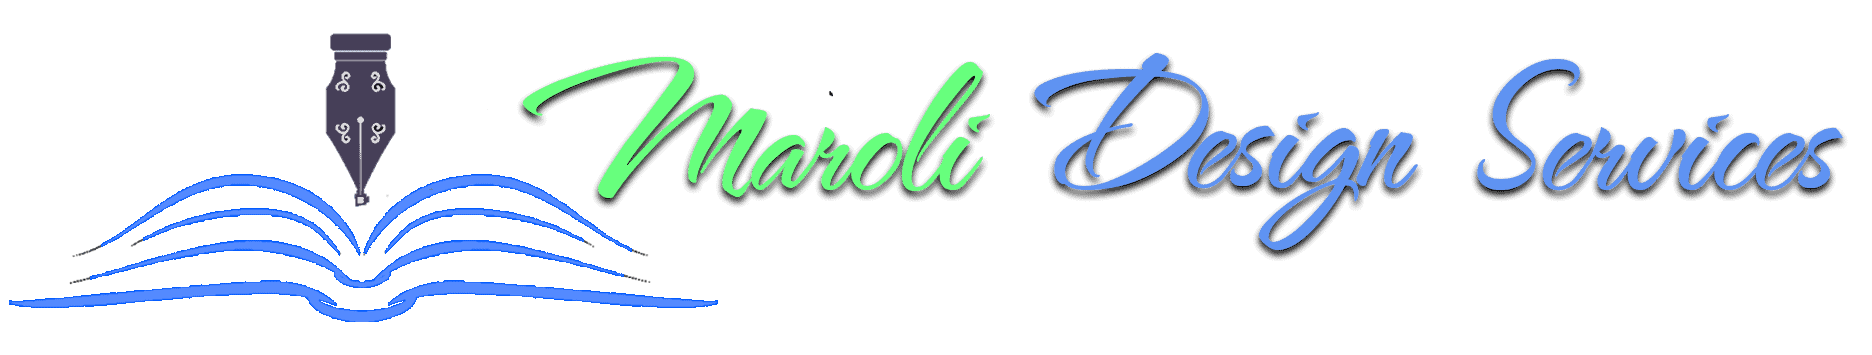 Maroli Design Services